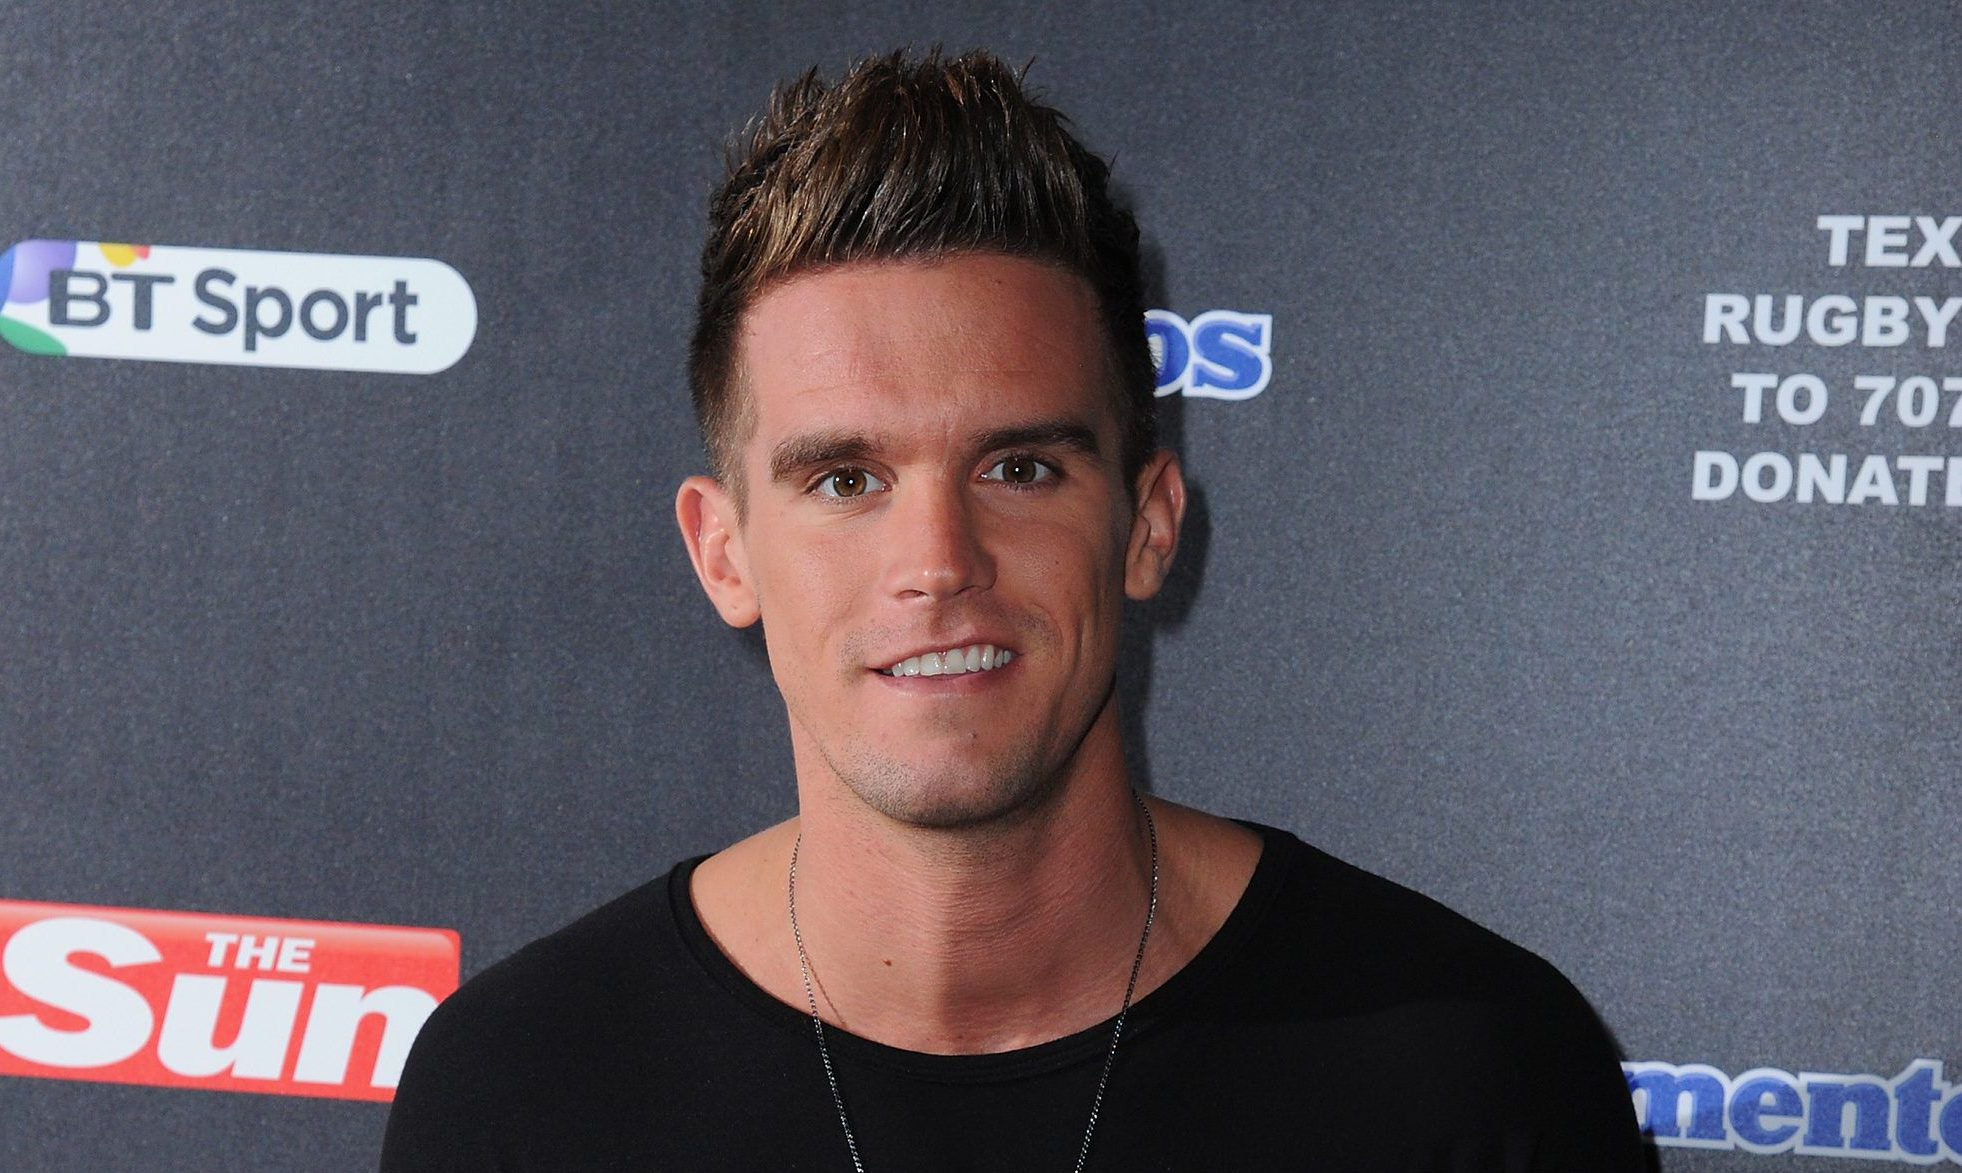 Geordie Shore's Gaz Beadle has finally said something about threesome cheating claims